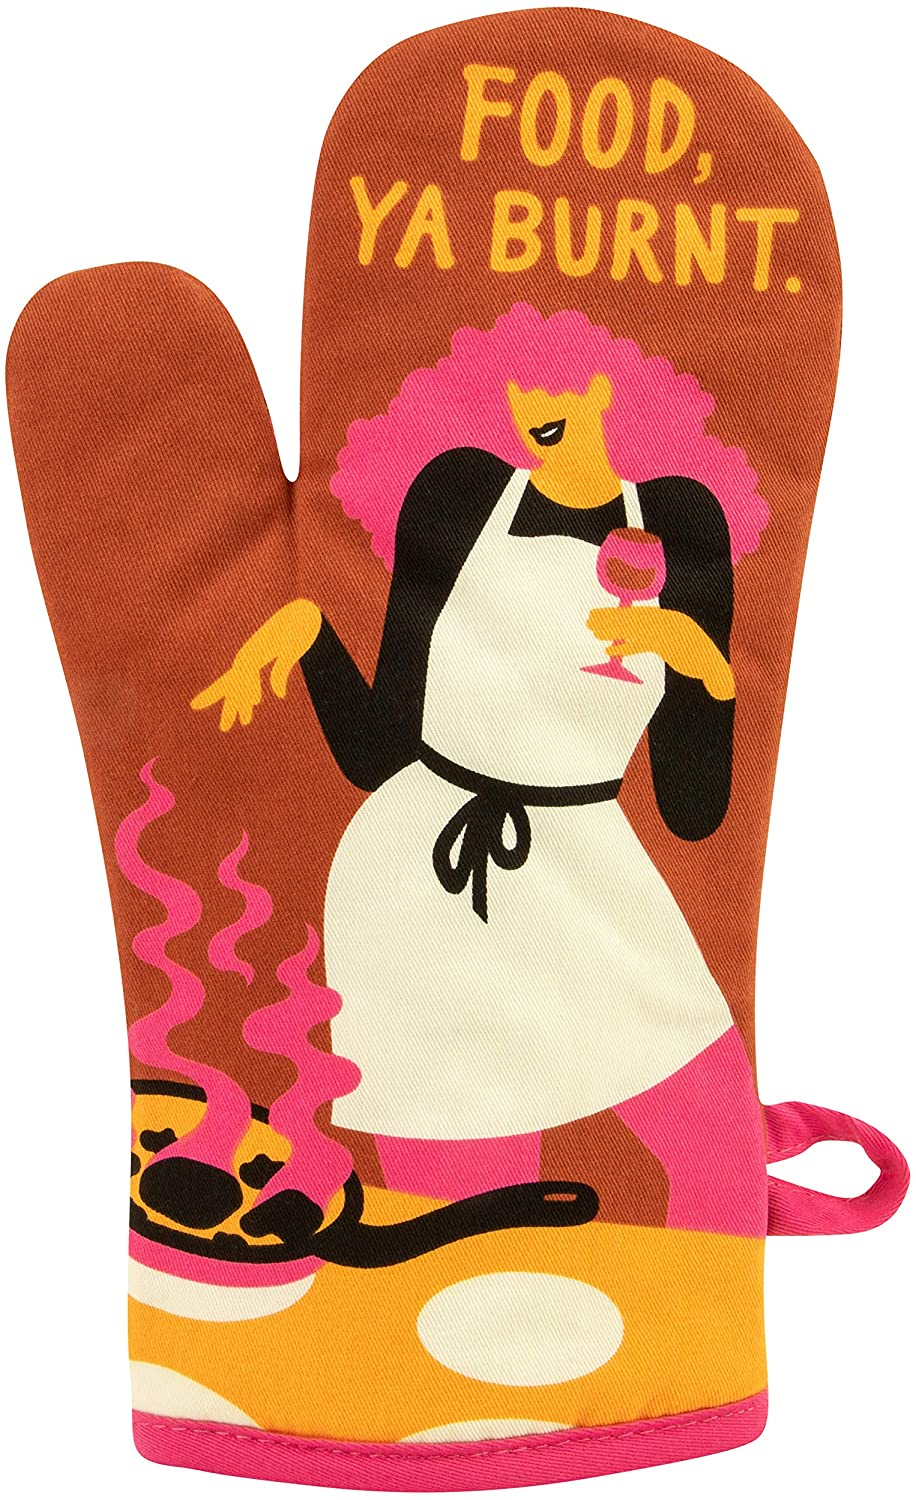 mothers-day-gifts-oven-mitt